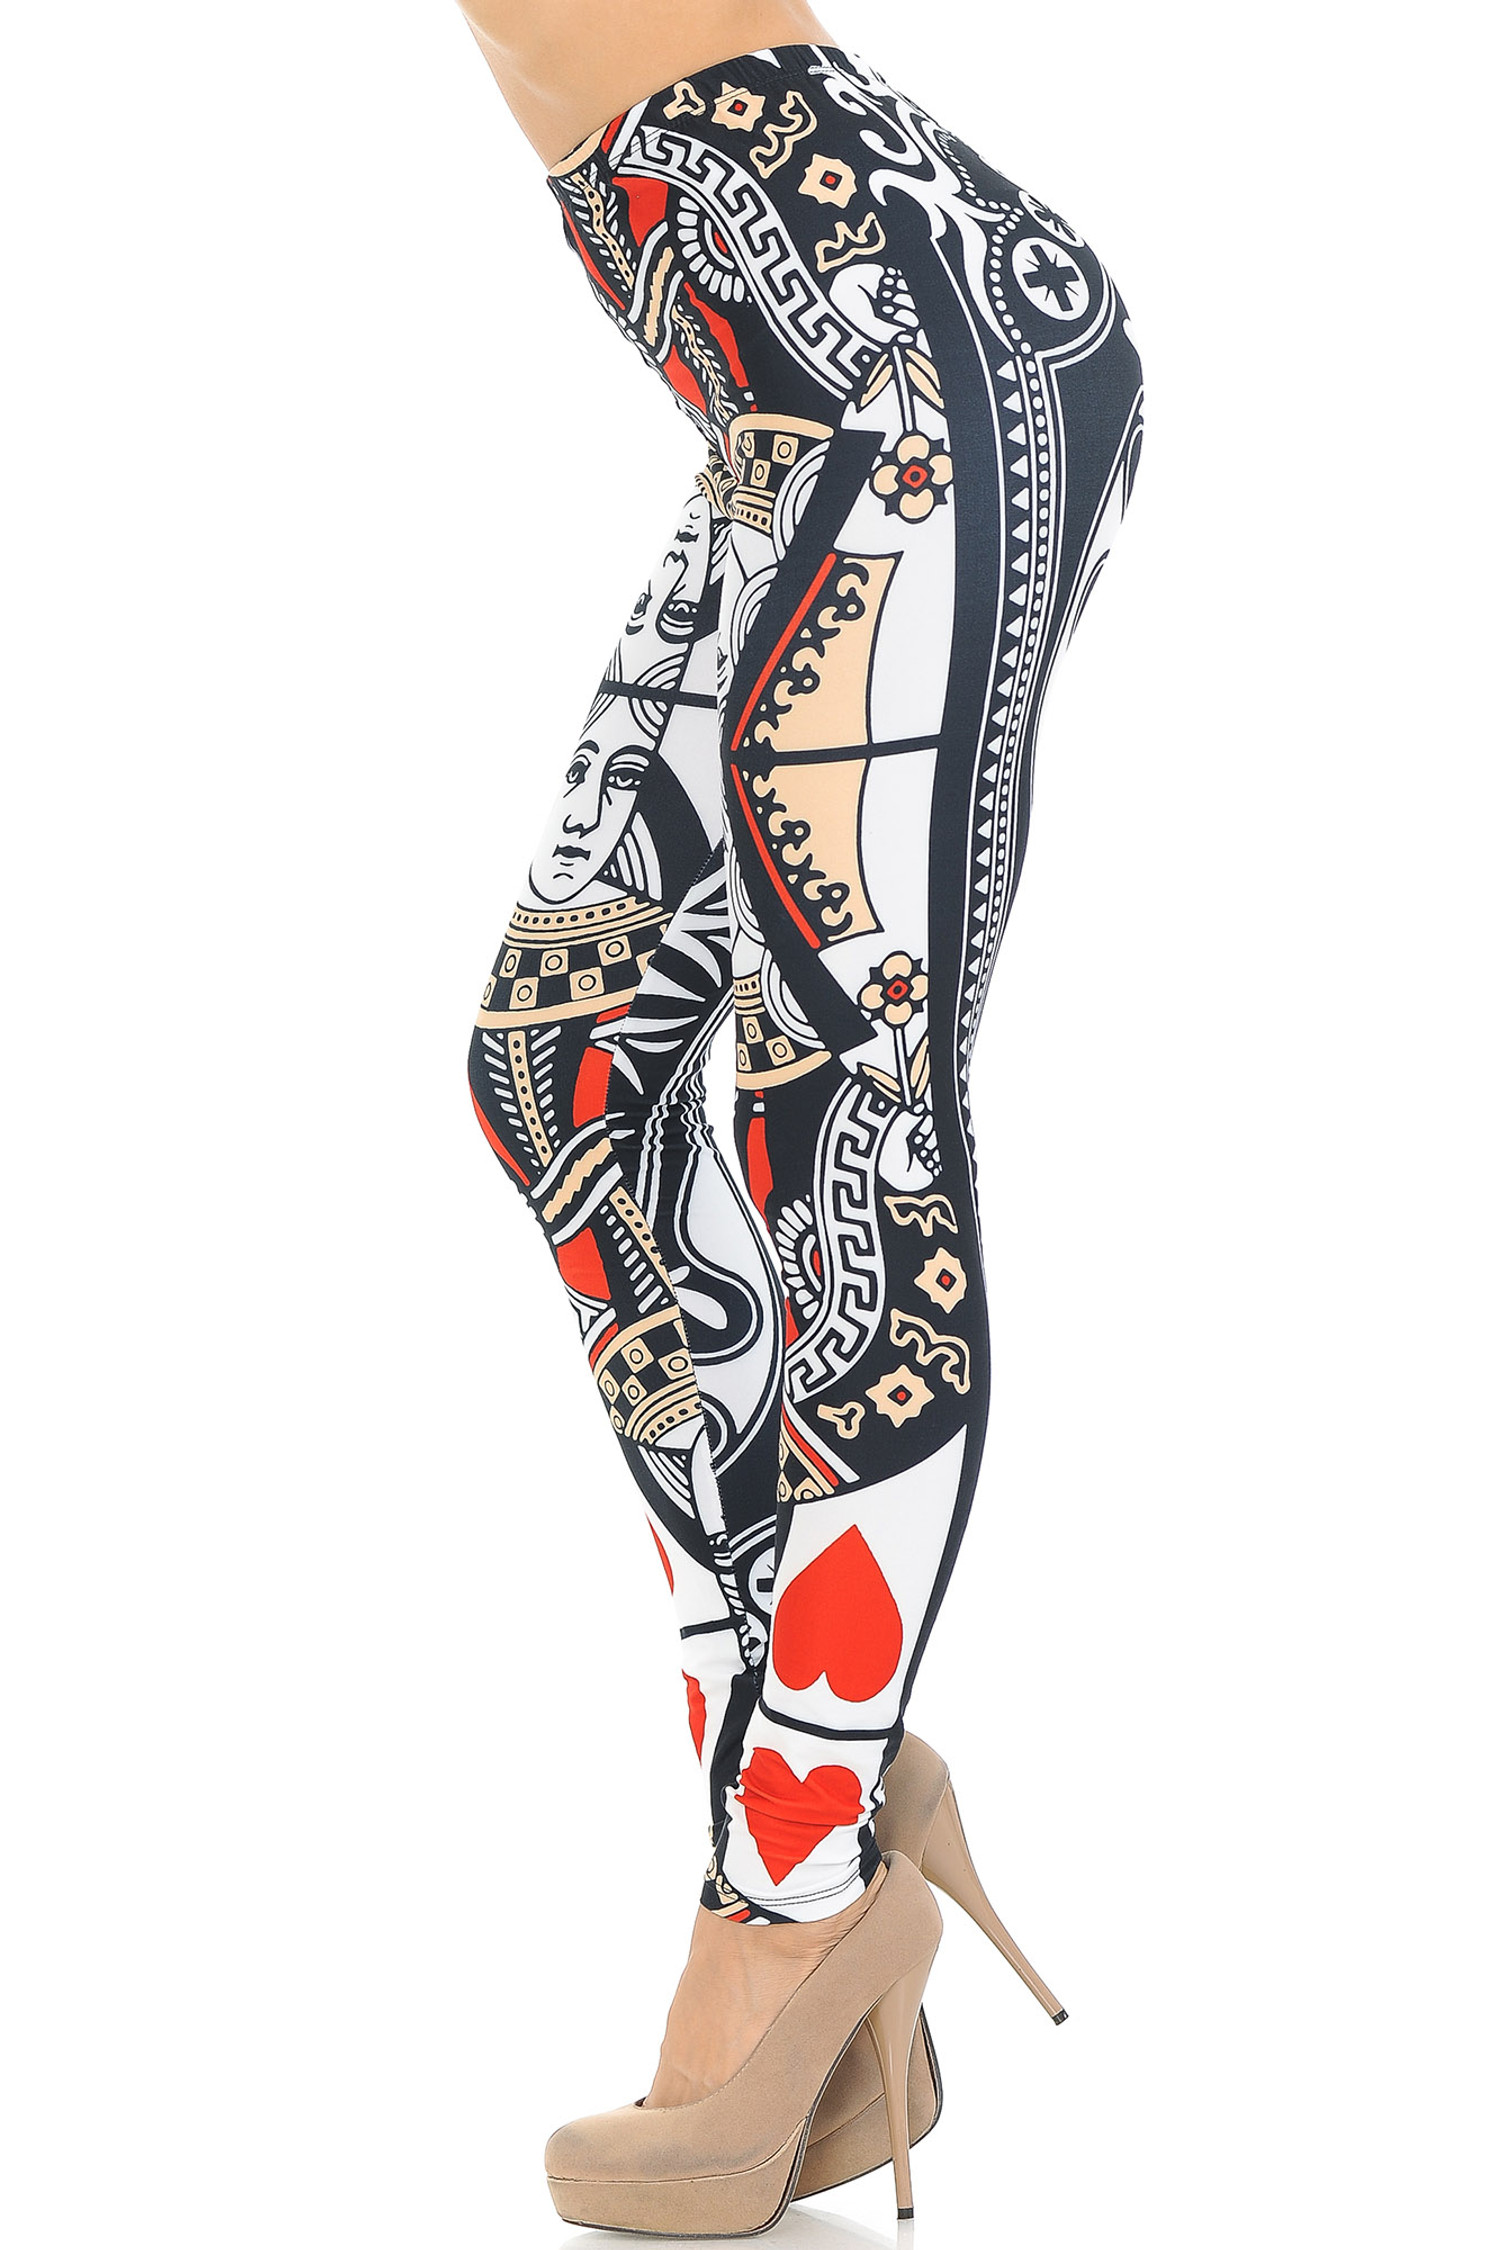 Creamy Soft Queen of Hearts Extra Small Leggings - USA Fashion™